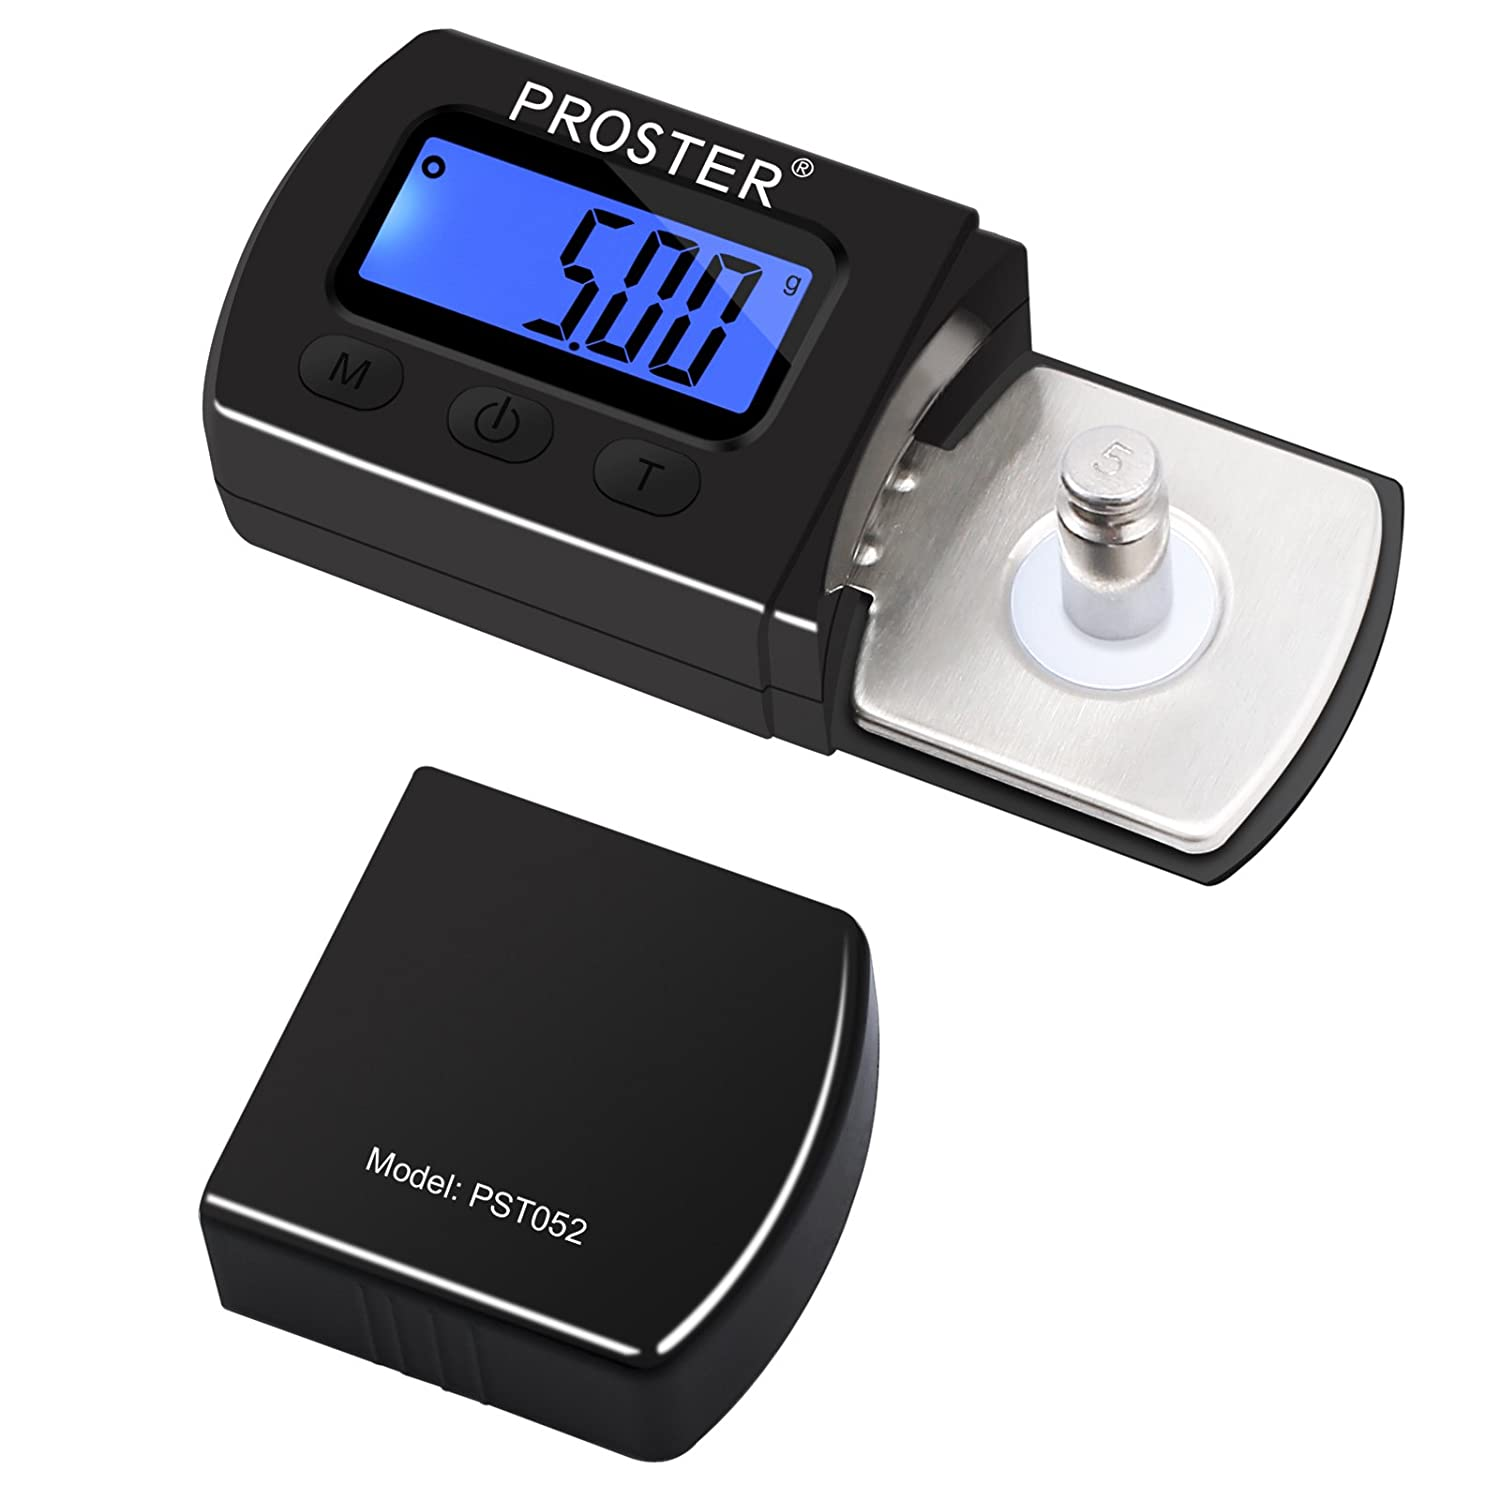 Proster Turntable Stylus Force Scale Gauge 0.01g LP Stylus Gauge LCD Backlight Tonearm Phono Cartridge Brilliant Black Proster Trading Limited